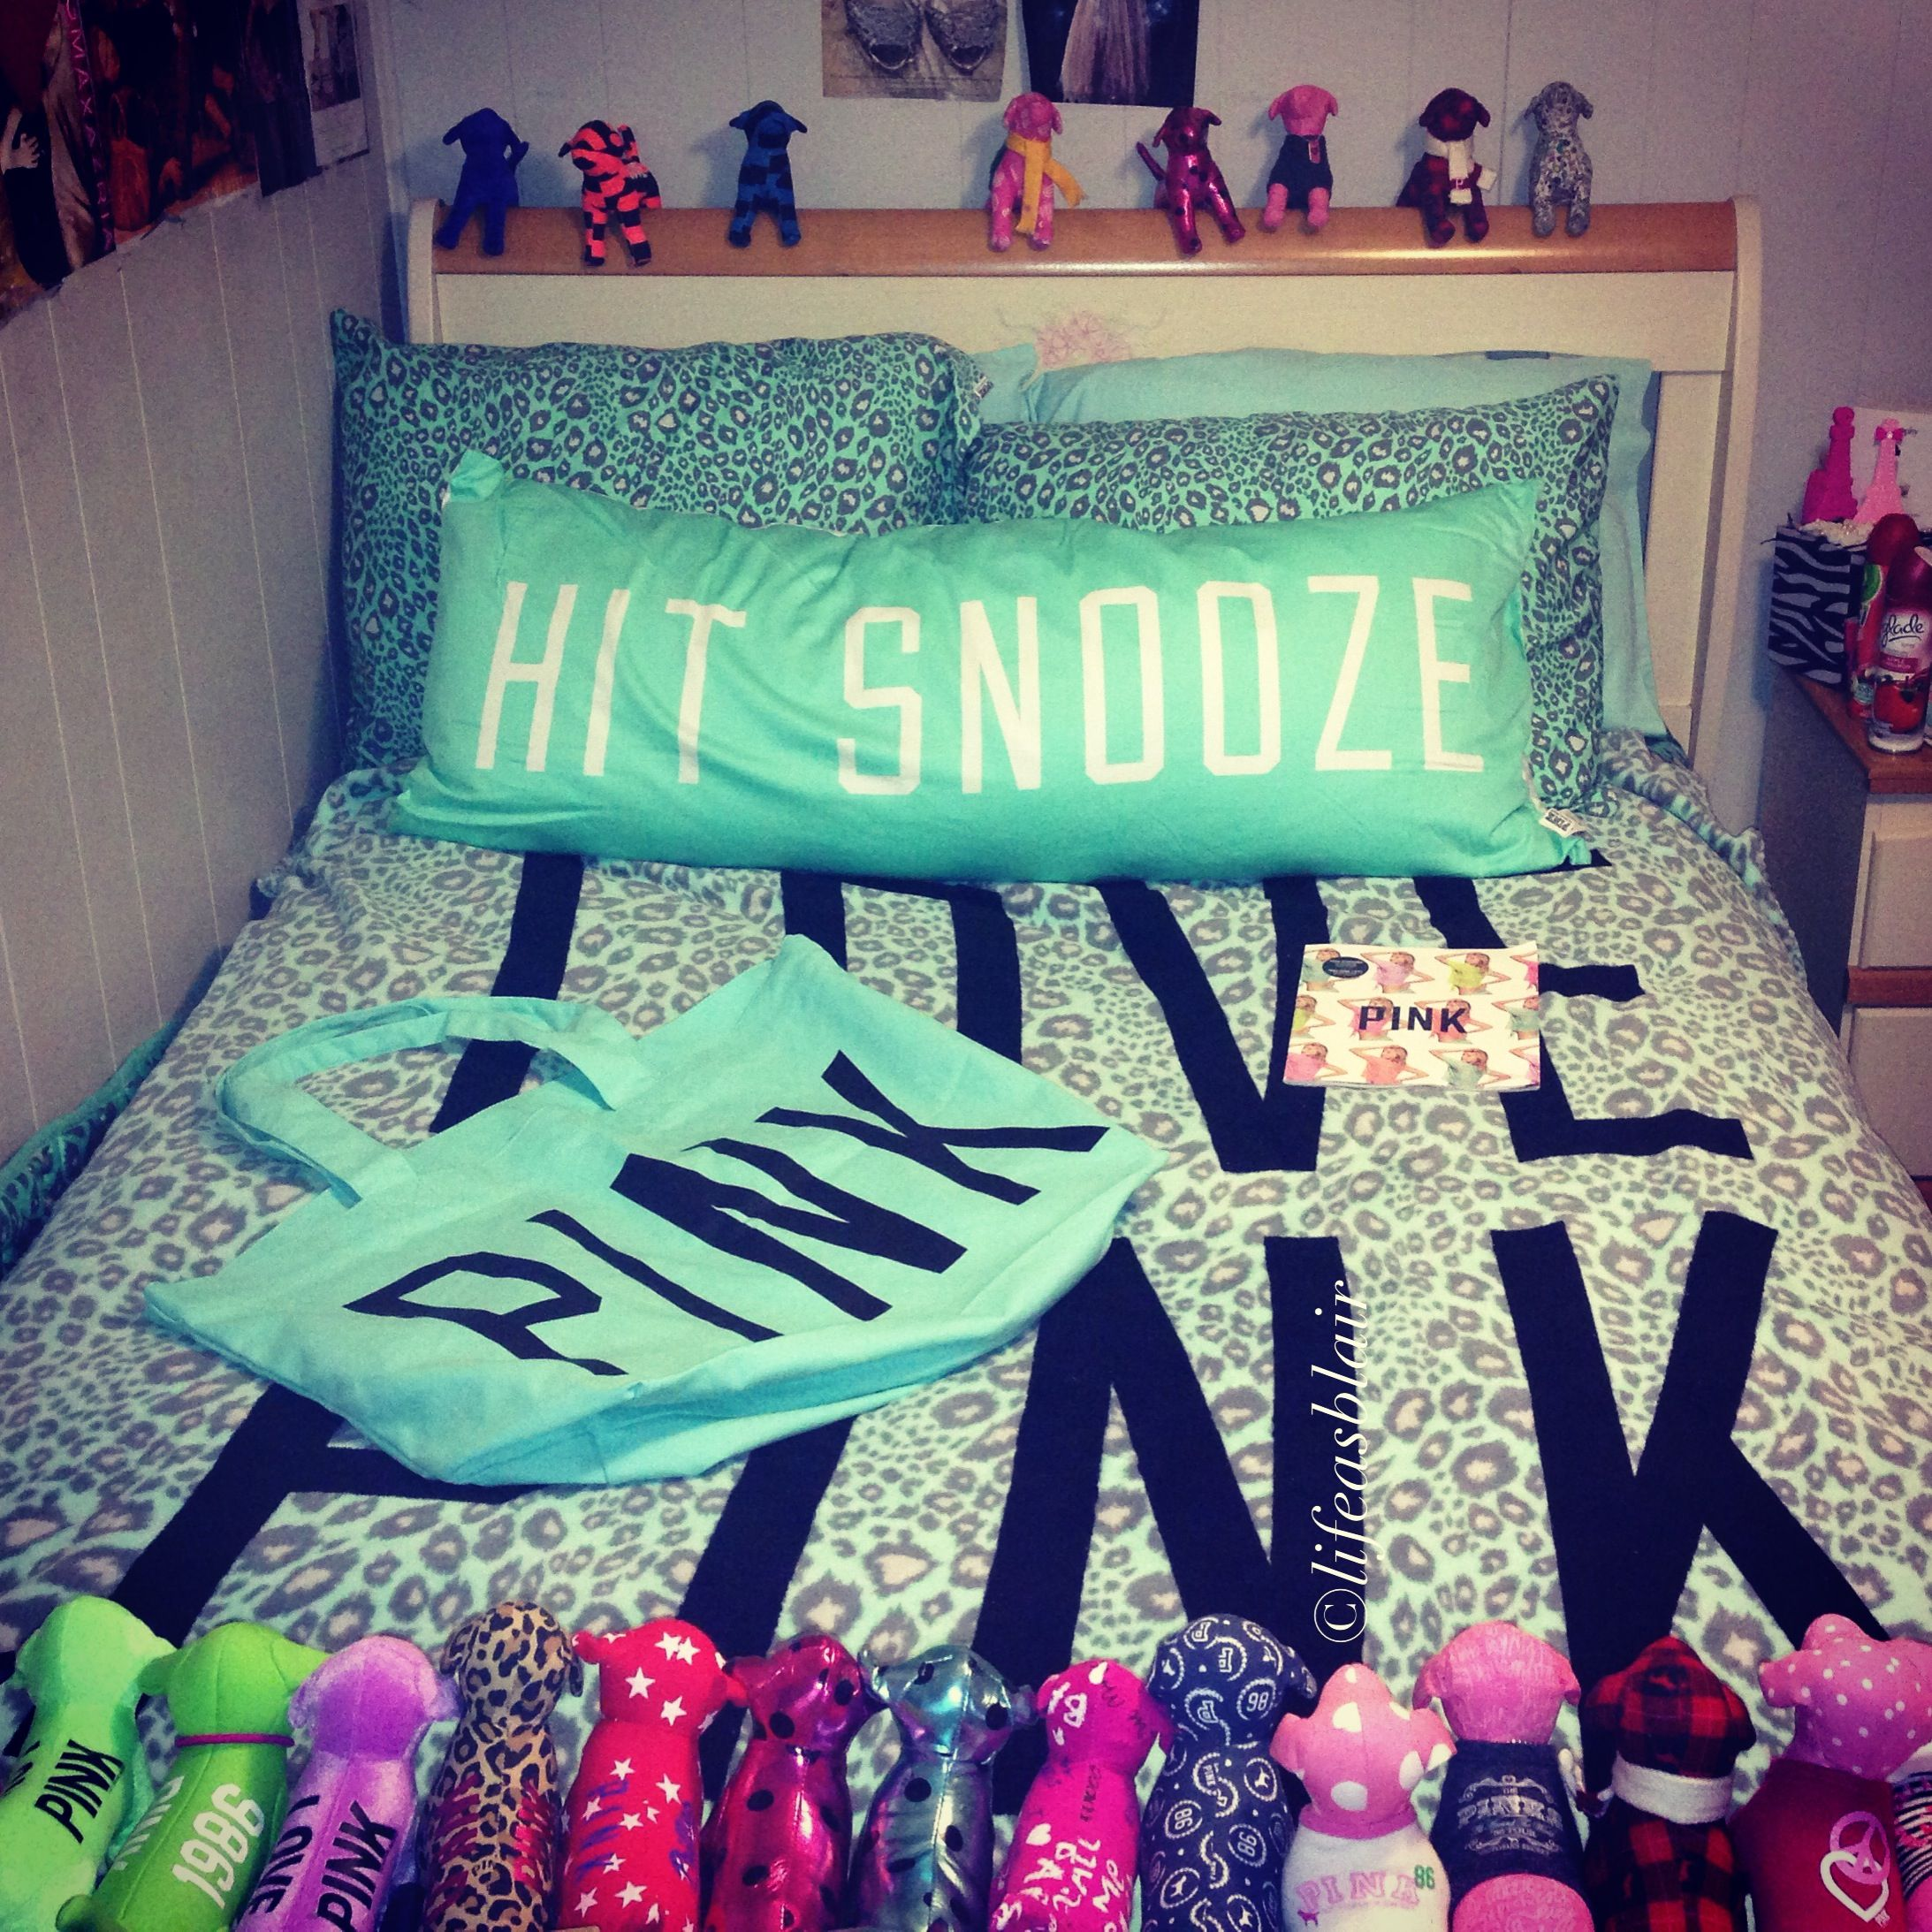 Victorias secret pink bed sets - Find This Pin And More On Pink I Love This Vs Mint Leopard Bedding